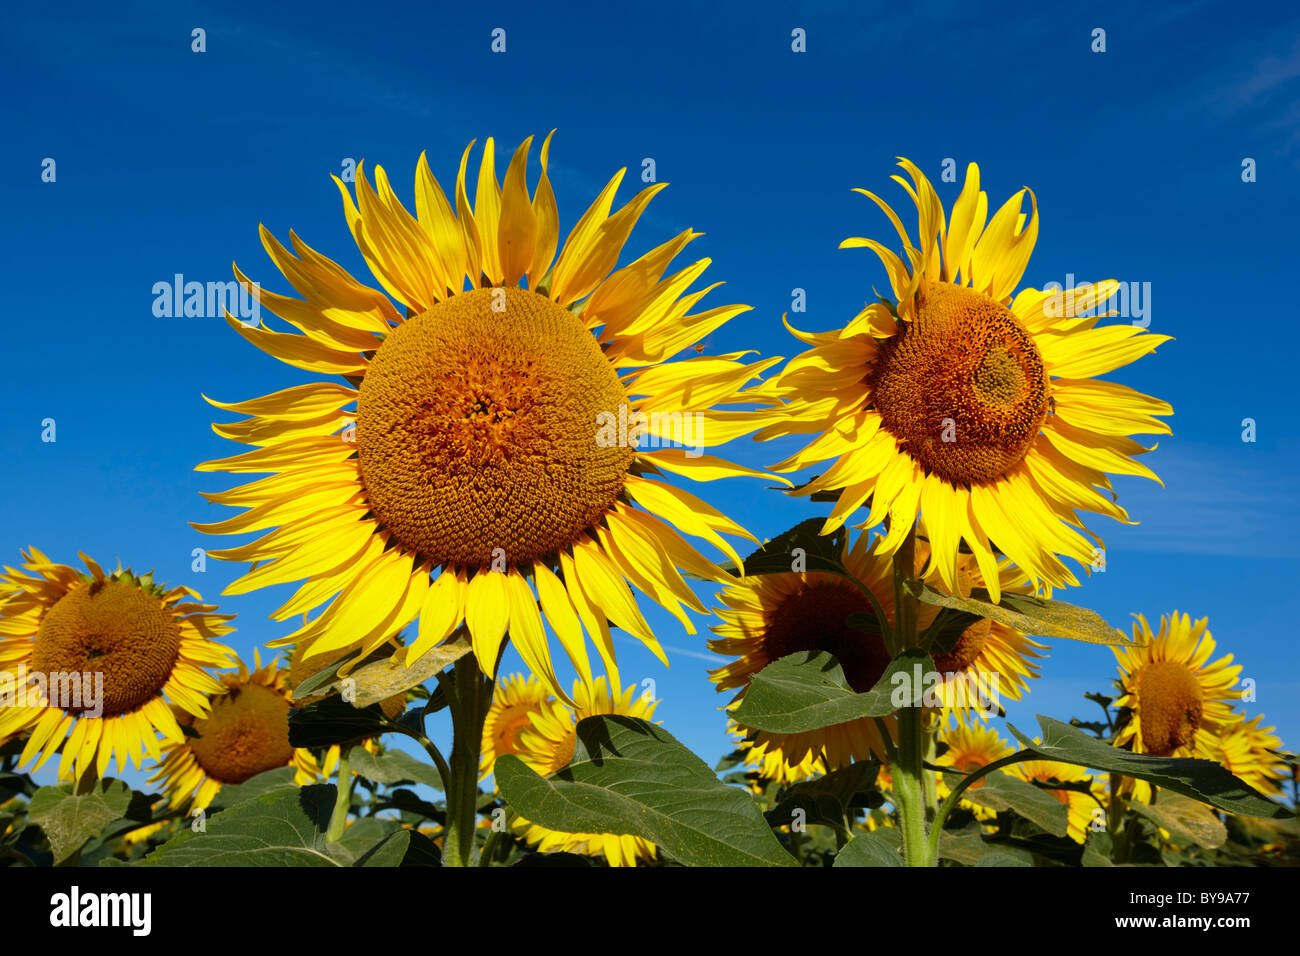 Blue sky with sunflowers. - Stock Image